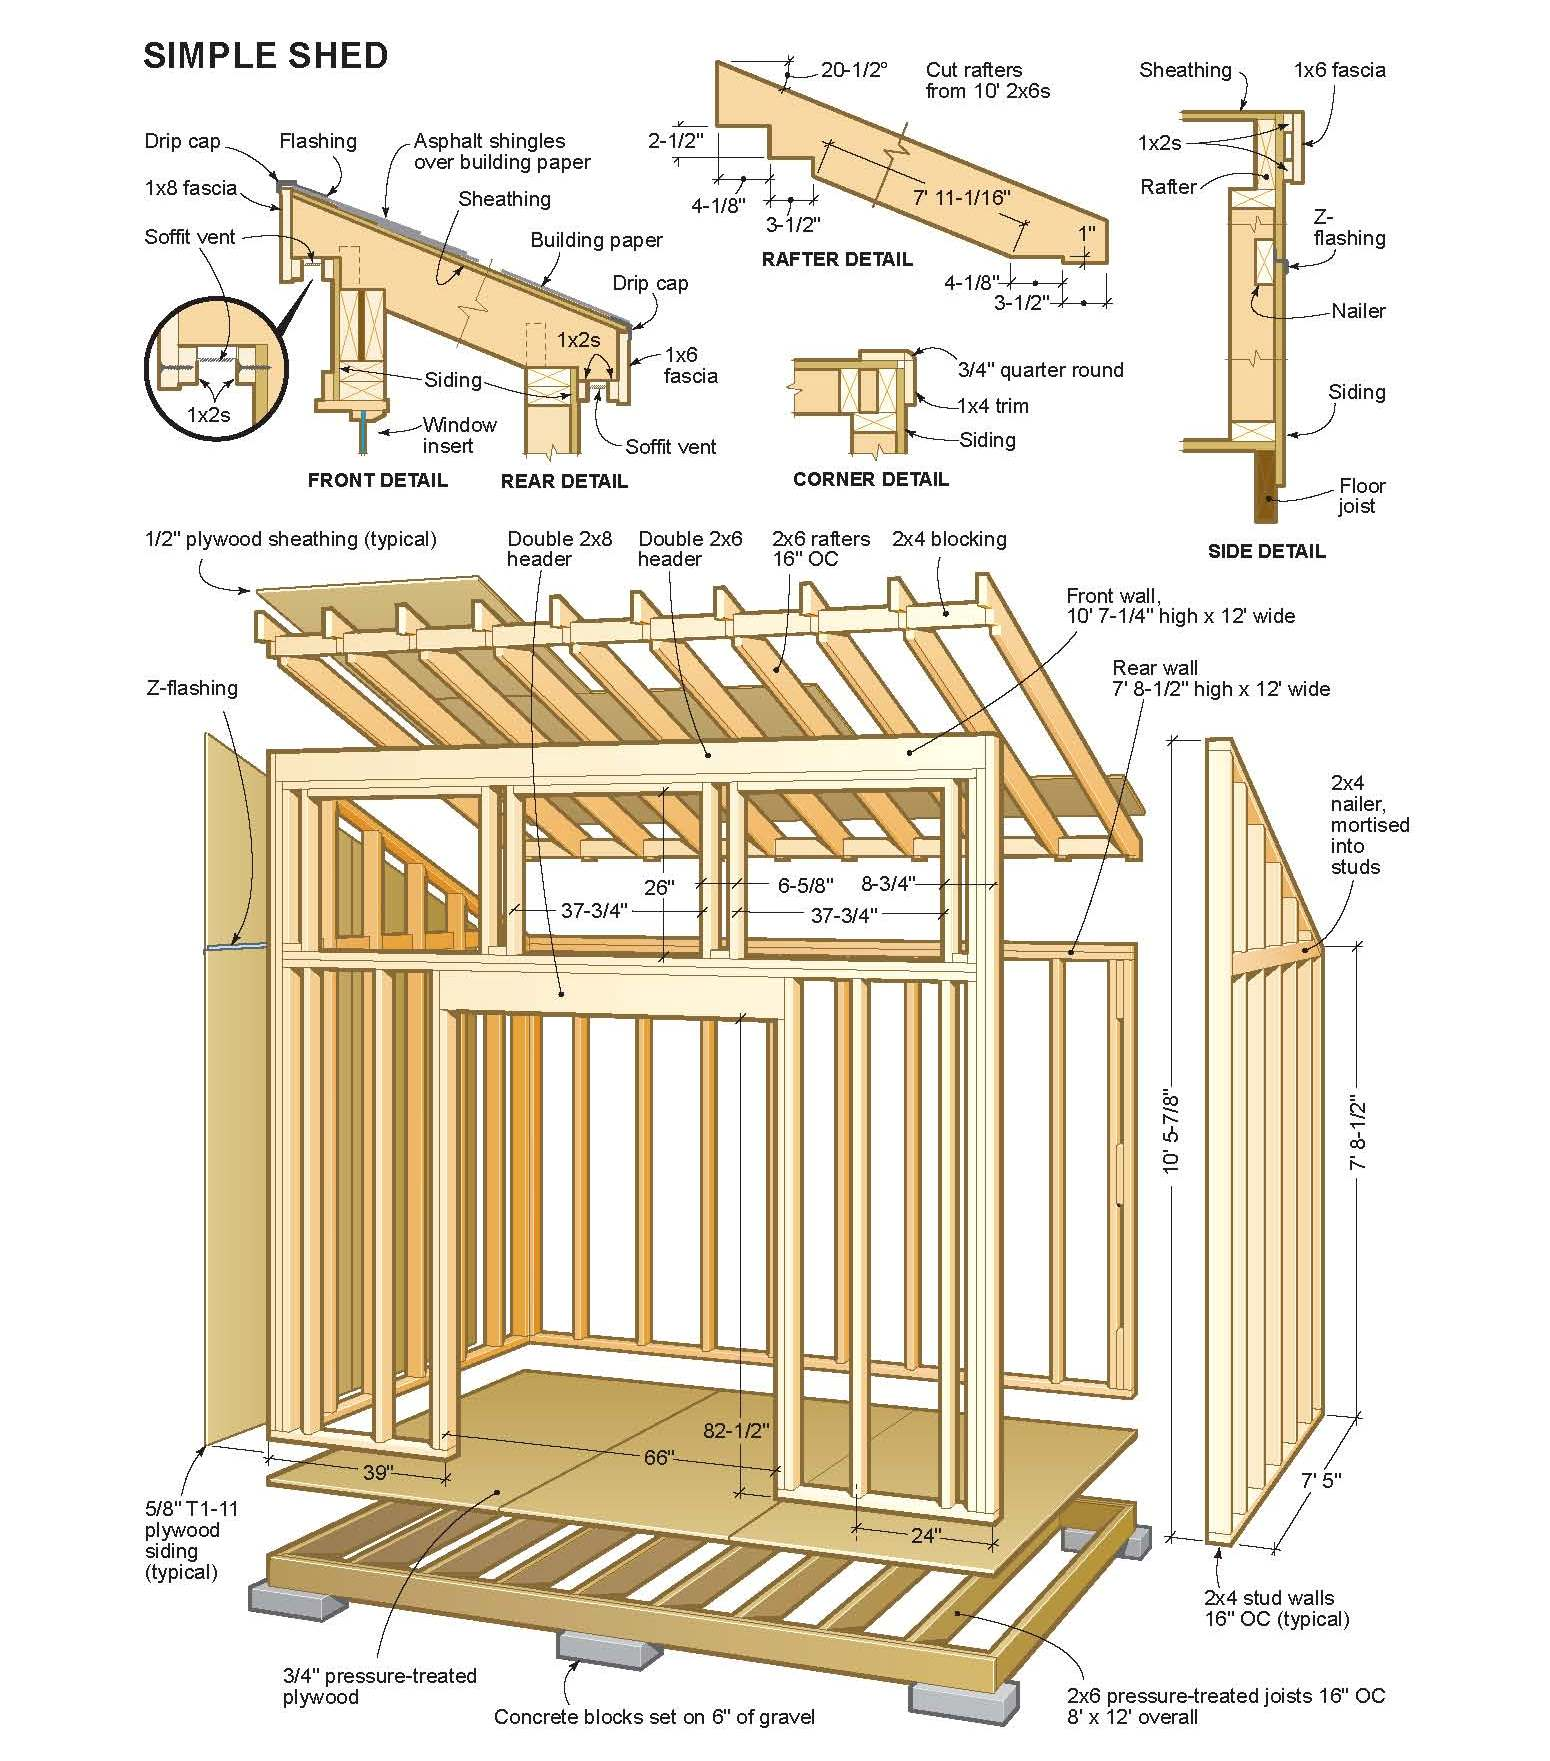 Shed building made easy with free shed plans cool shed for Shed plans and material list